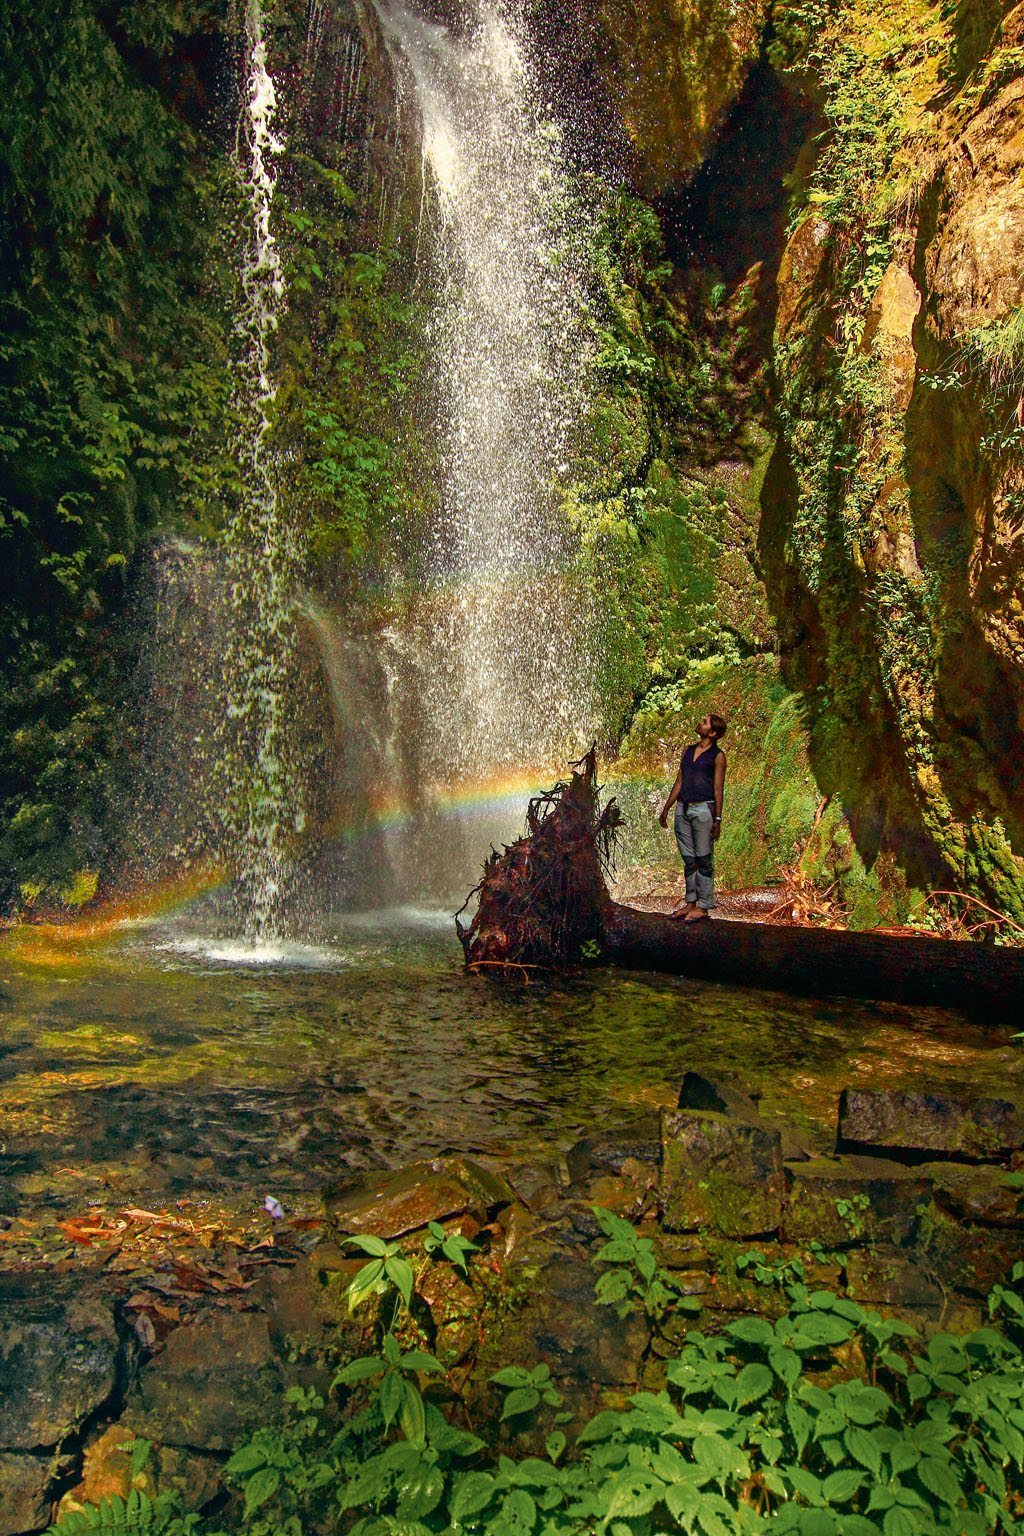 rainbow in the waterfall at Jibhi